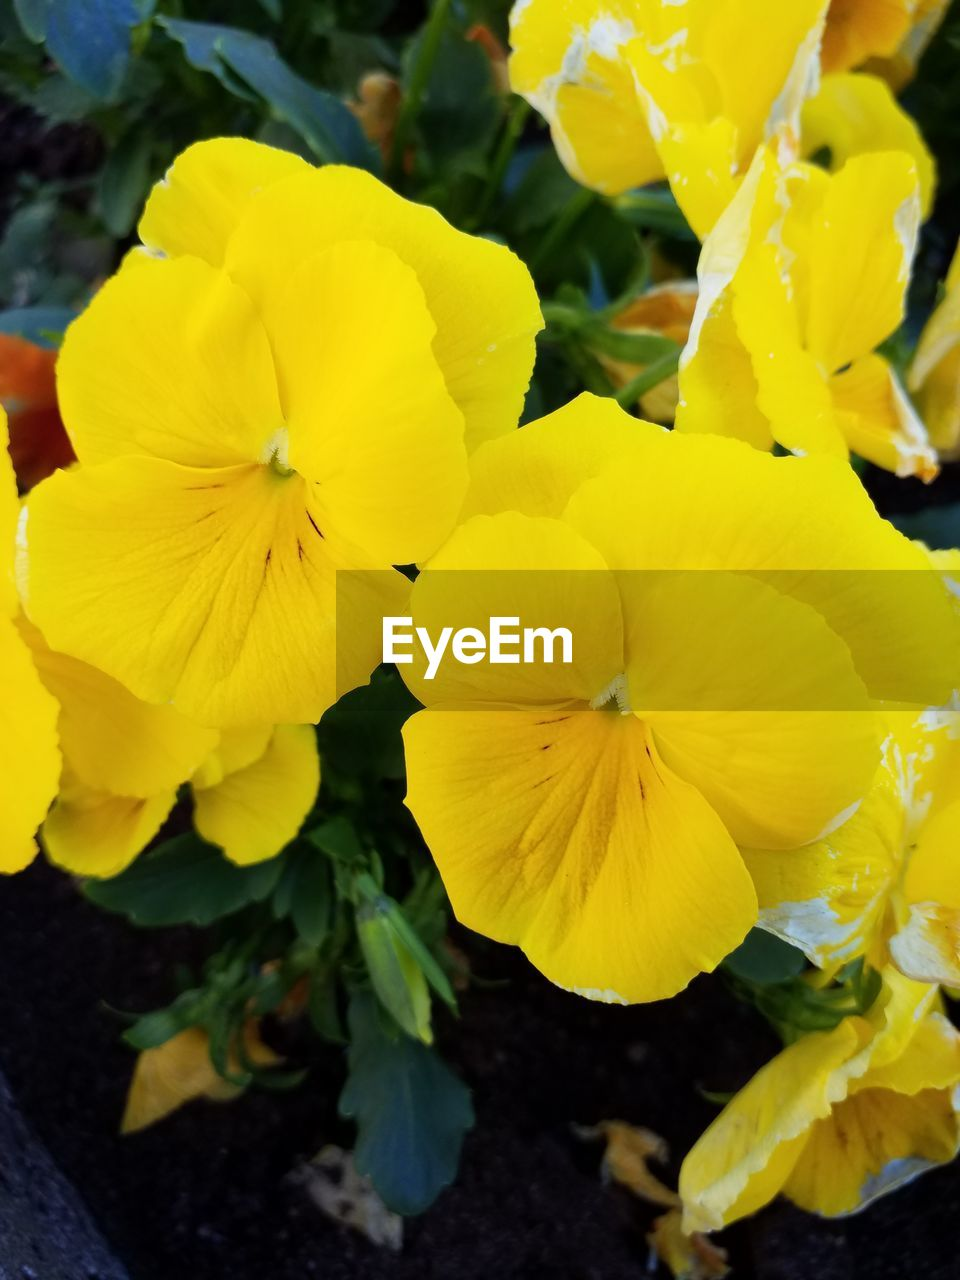 flower, flowering plant, yellow, fragility, vulnerability, petal, beauty in nature, plant, inflorescence, flower head, freshness, close-up, growth, nature, day, no people, focus on foreground, outdoors, pansy, botany